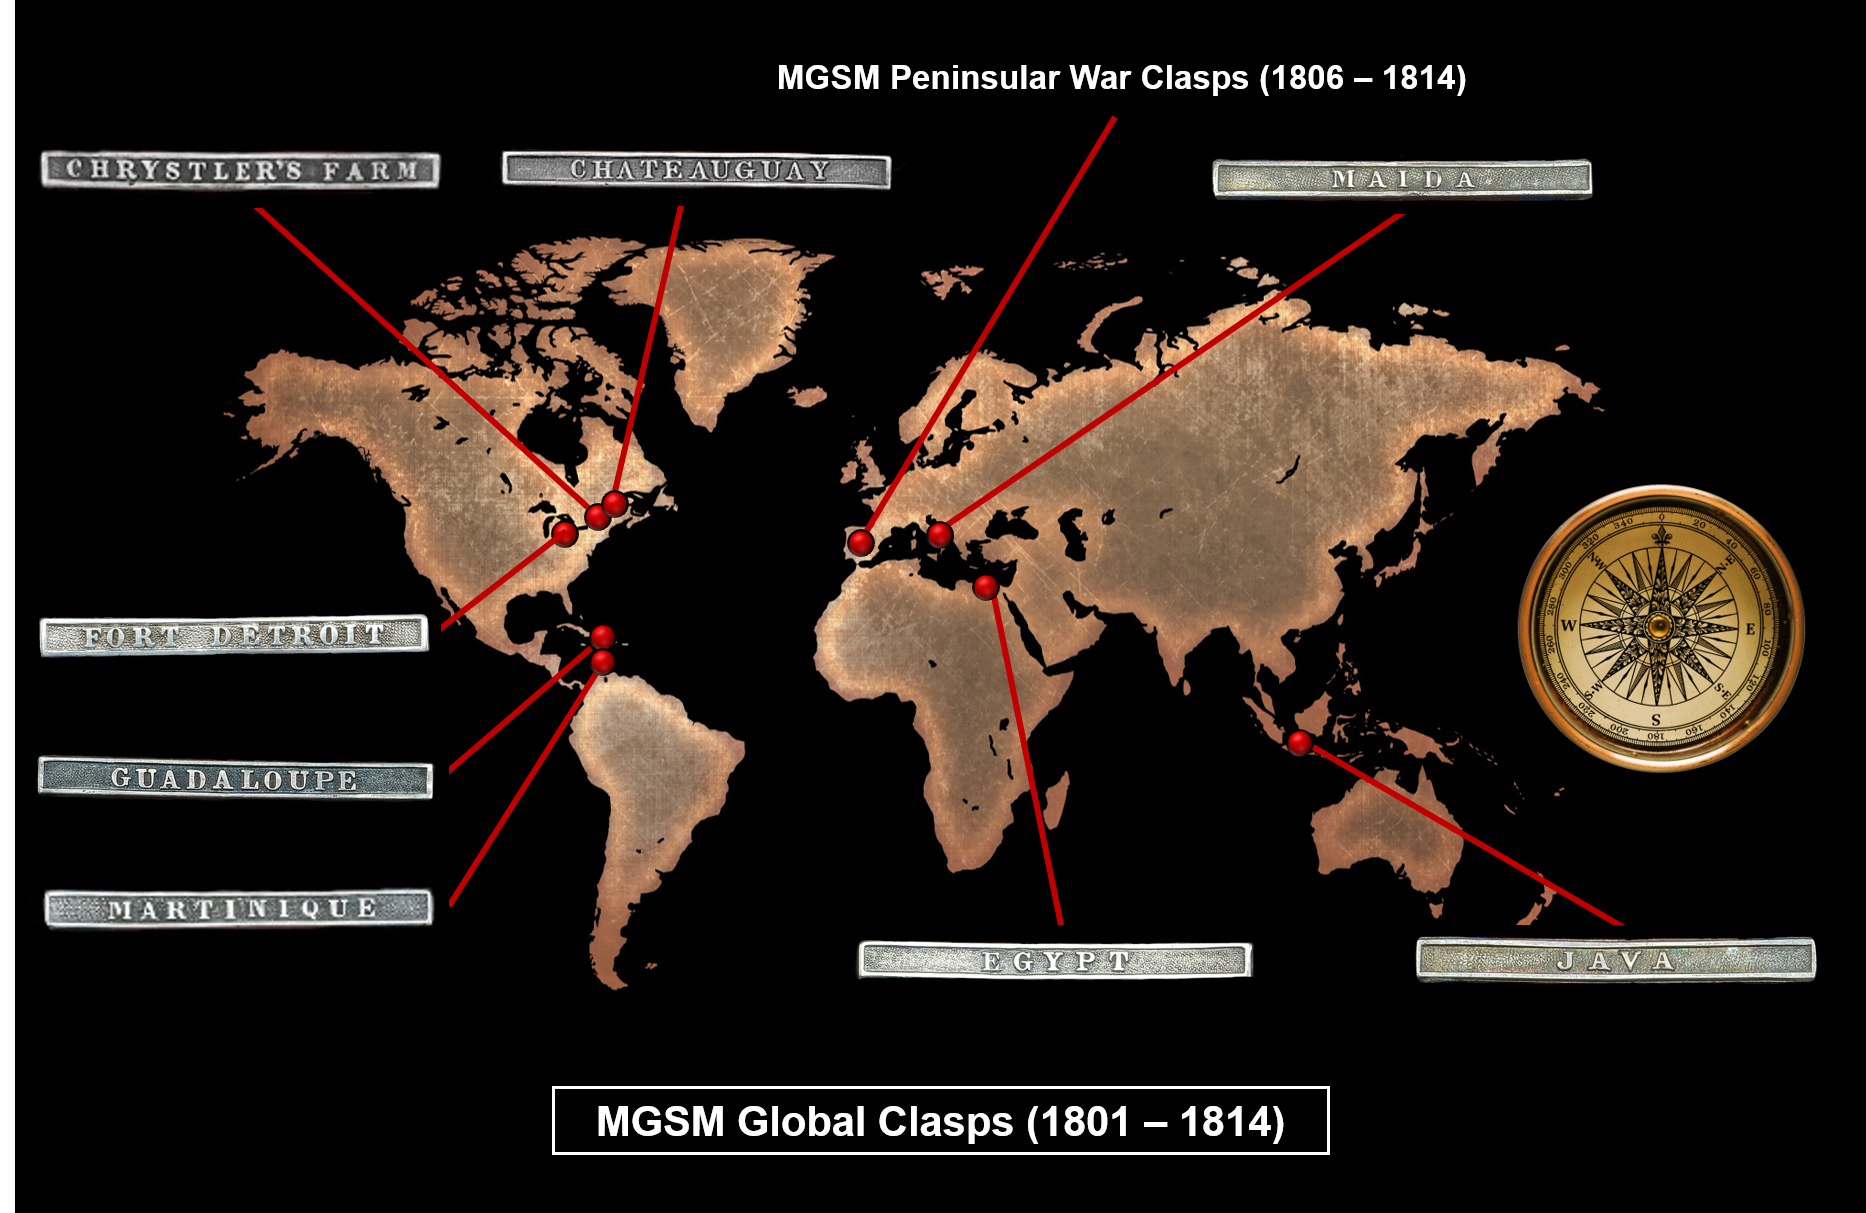 Figure 4 - Global Clasps of the Military General Service Medal